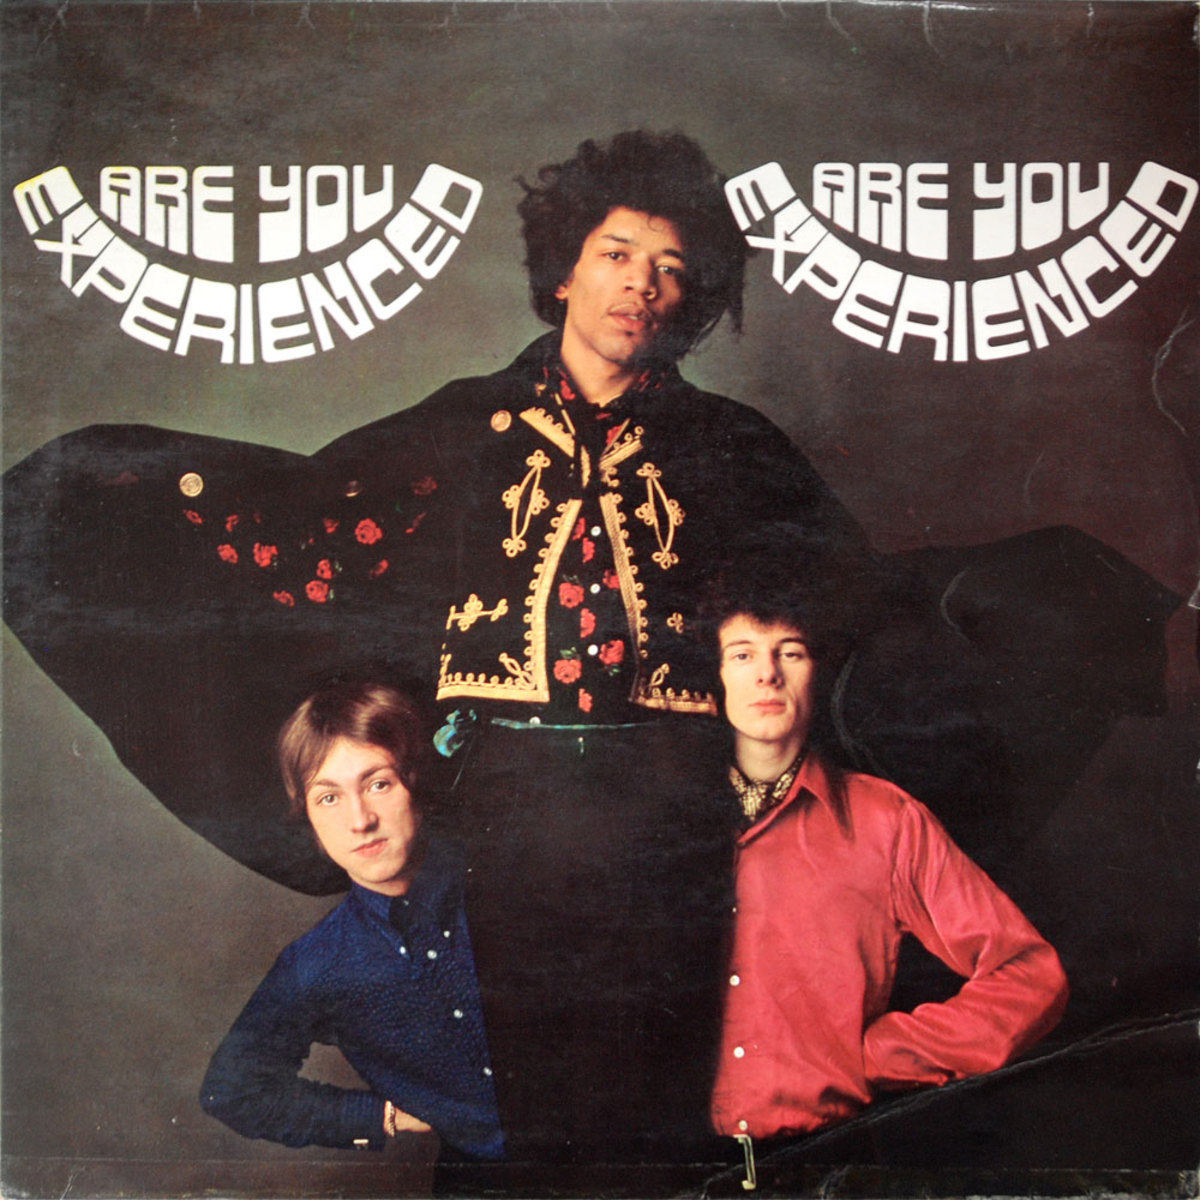 "Jimi Hendrix Experience ""Are You Experienced"" 1967 Track Records 612001 12"" Vinyl Record (1967)"